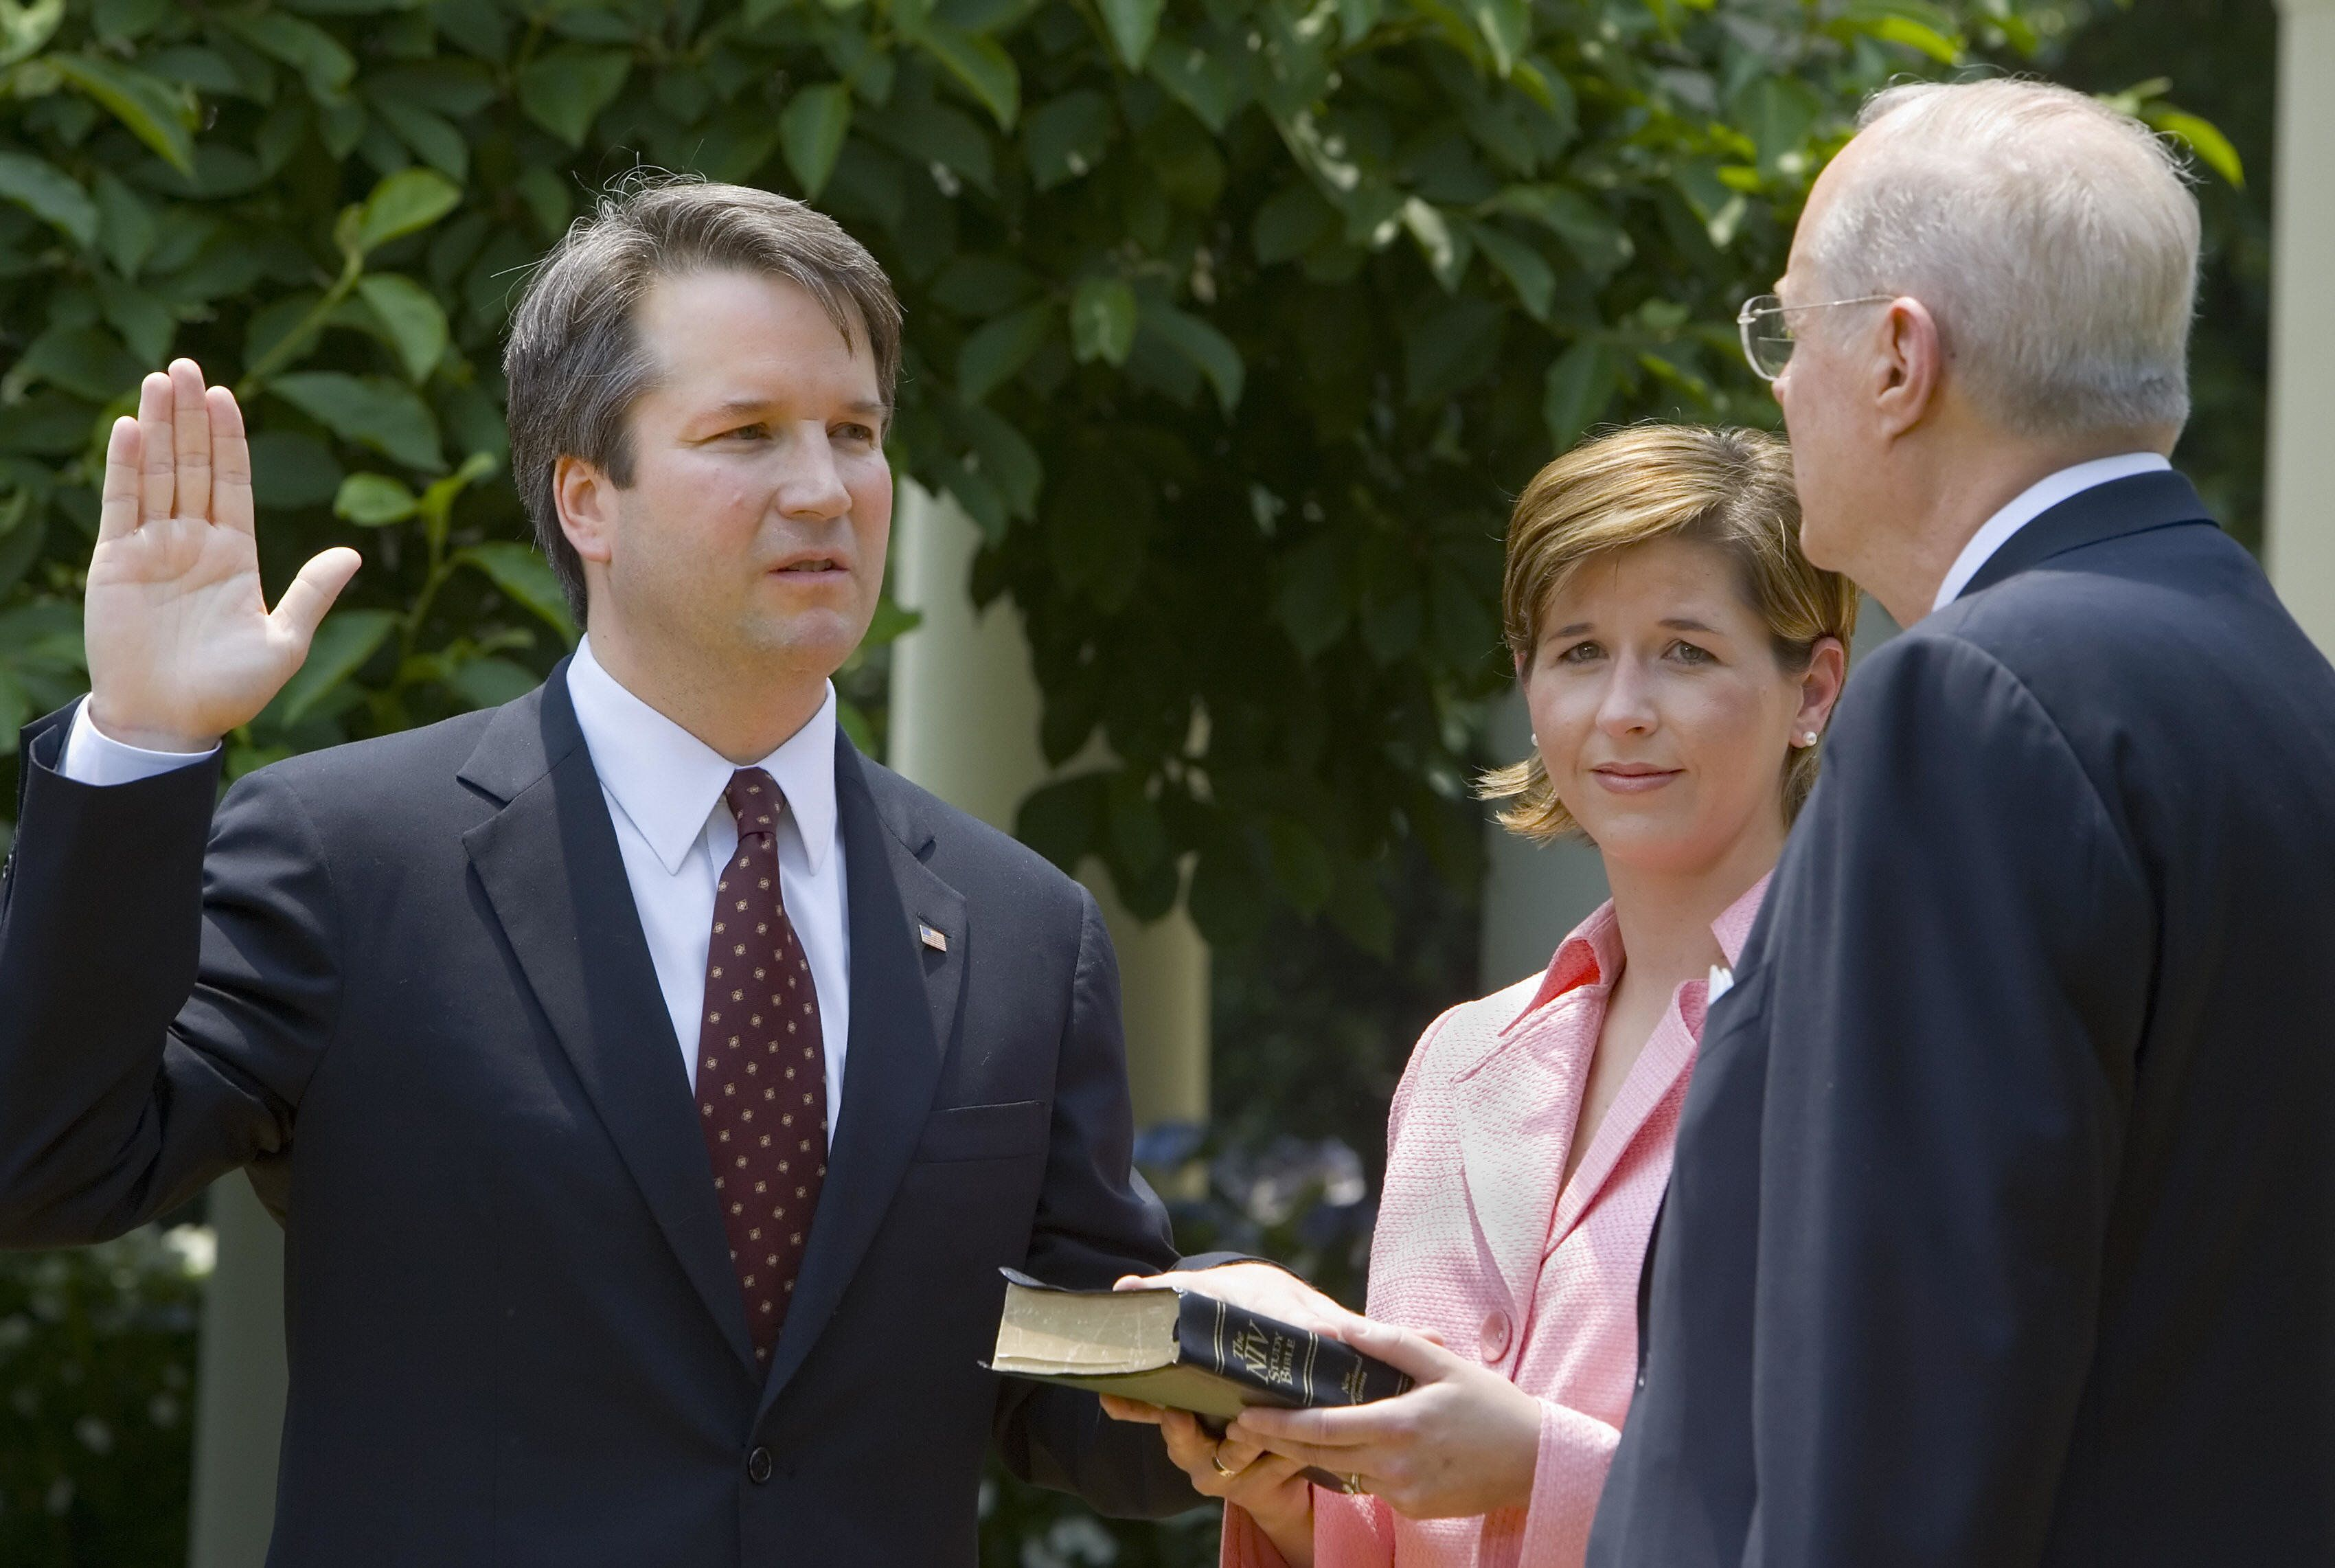 National Archives rebuffs Dems request for Kavanaugh documents